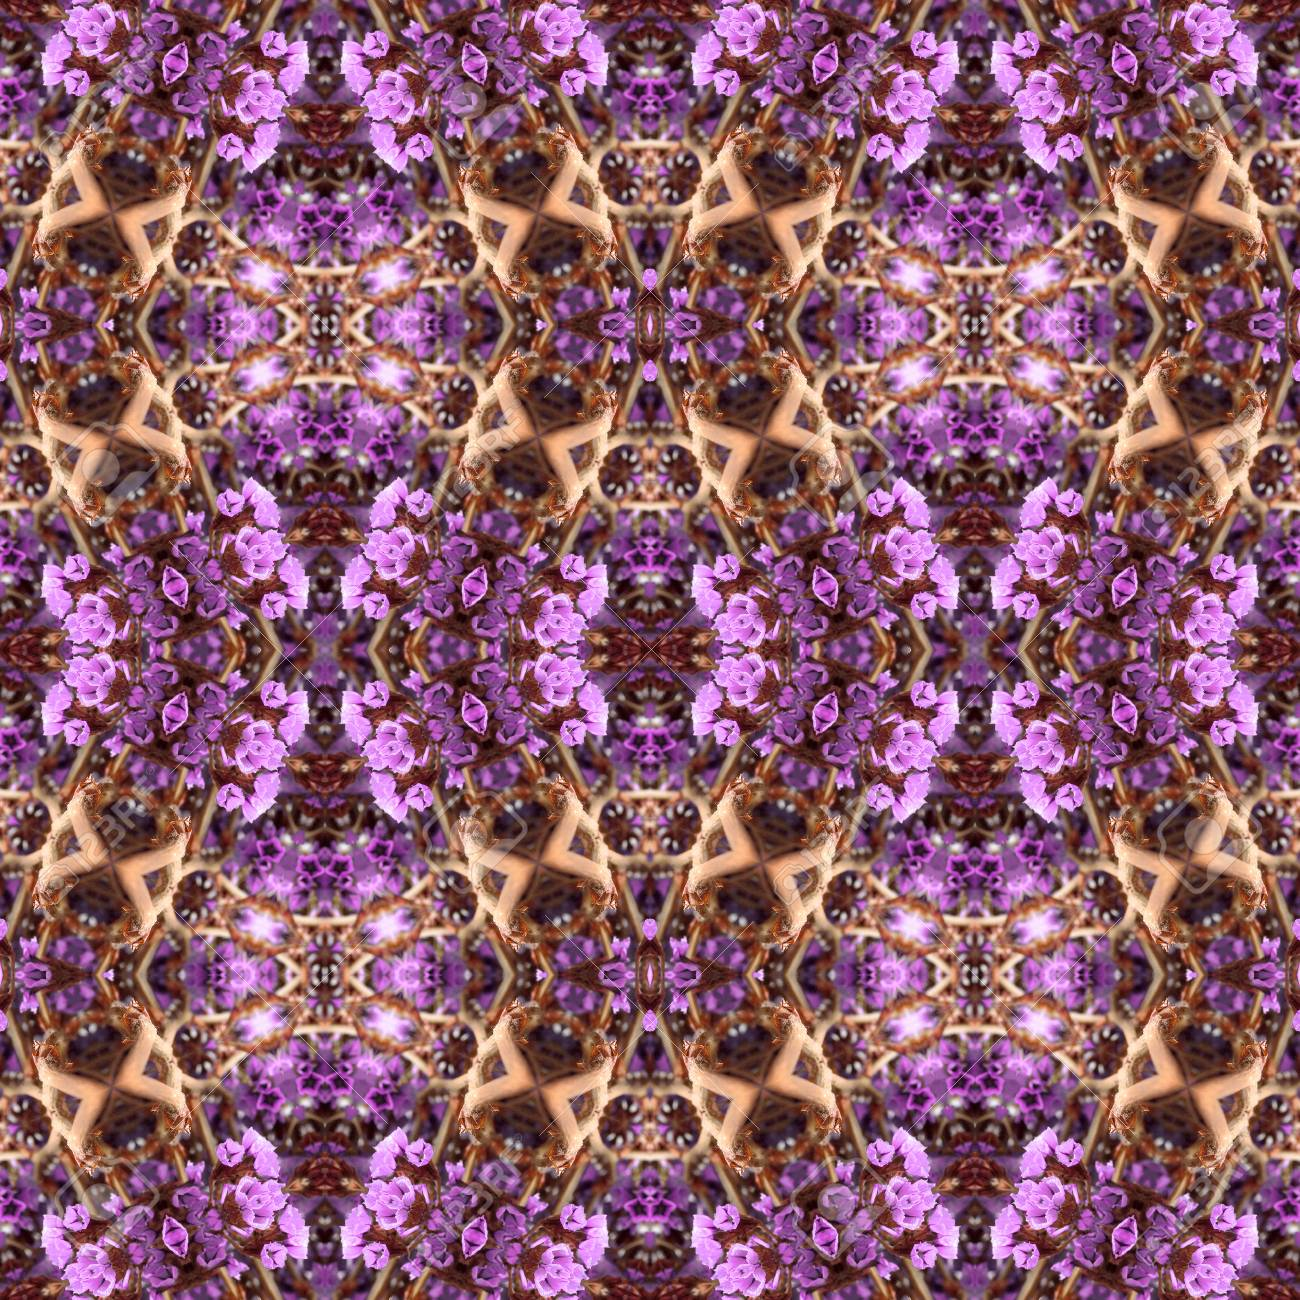 Abstract flowers seamless pattern background. Kaleidoscope from flowers. Hydraulic tile design. - 104075079